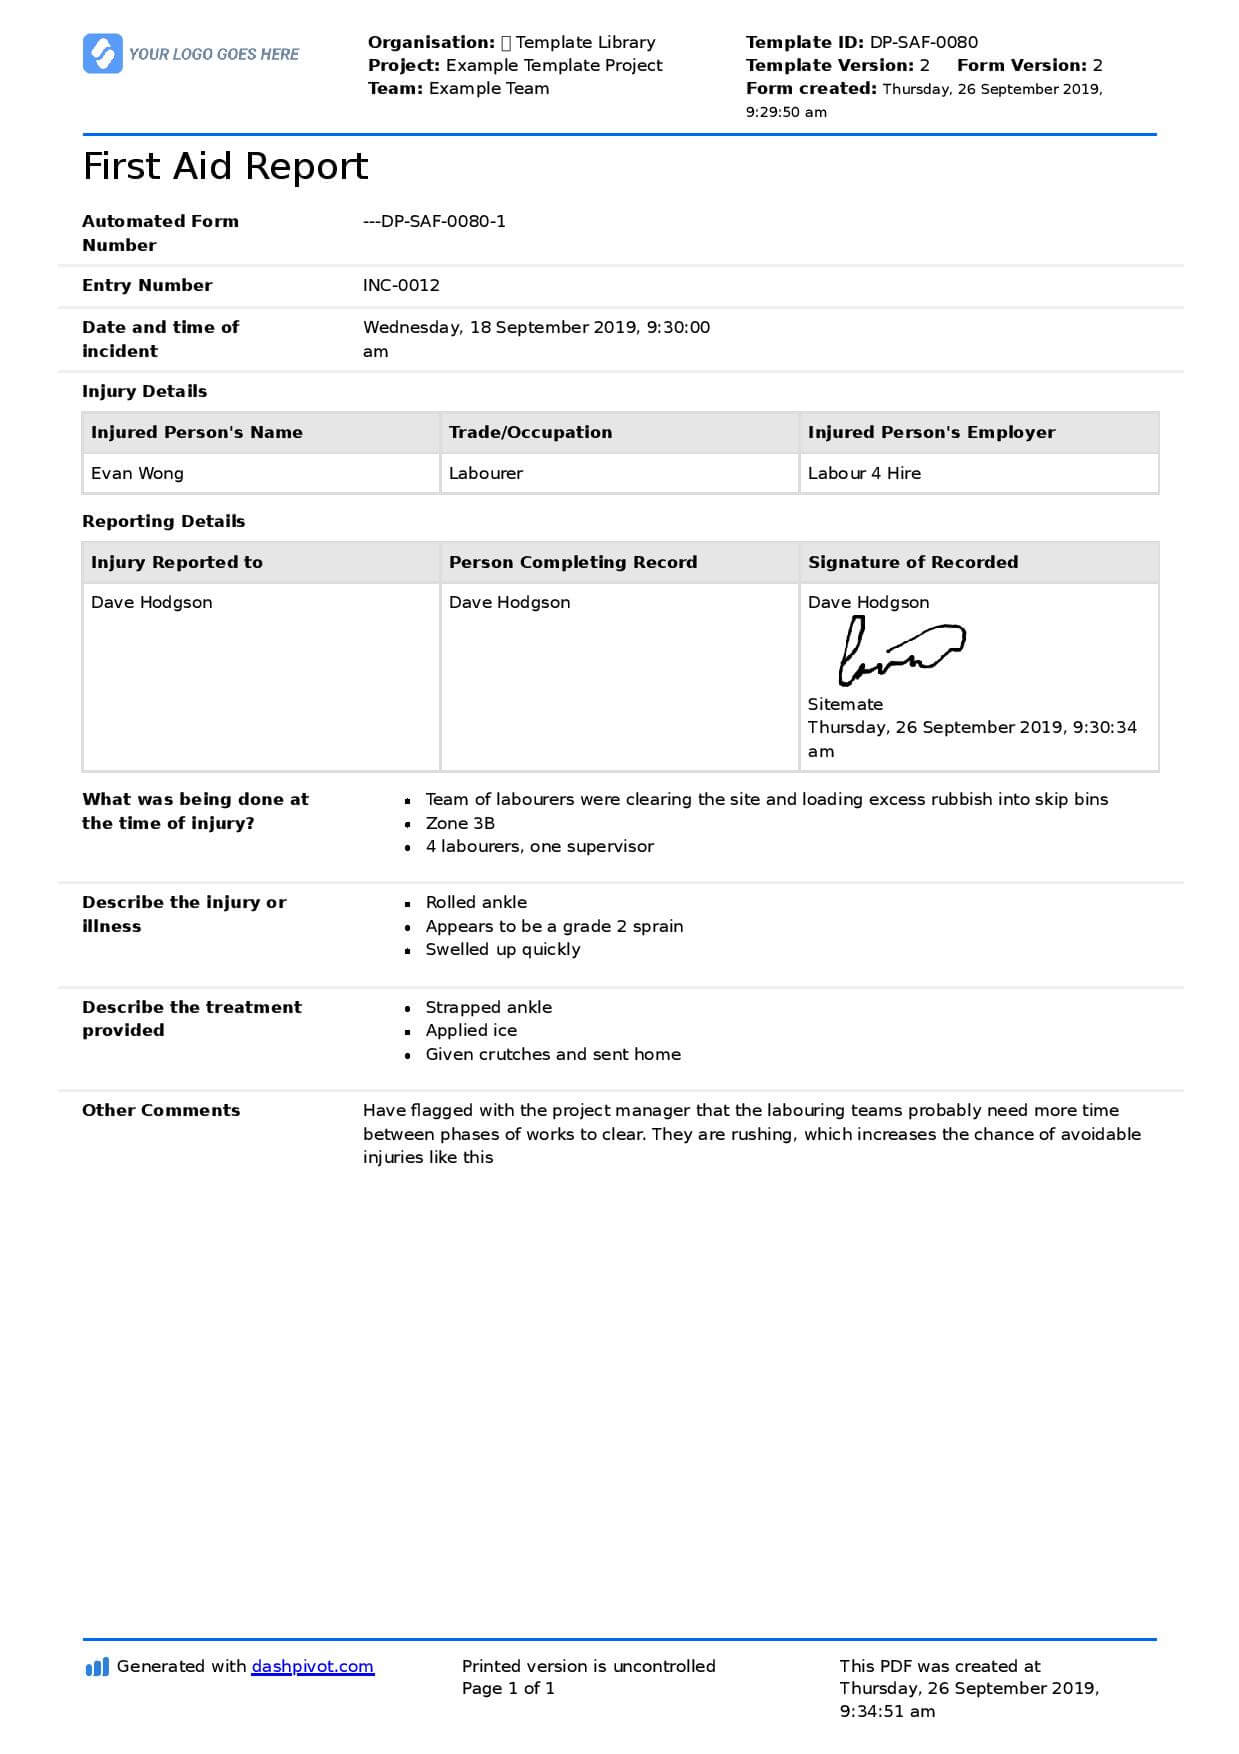 First Aid Report Form Template (Free To Use, Better Than Pdf) With Regard To First Aid Incident Report Form Template